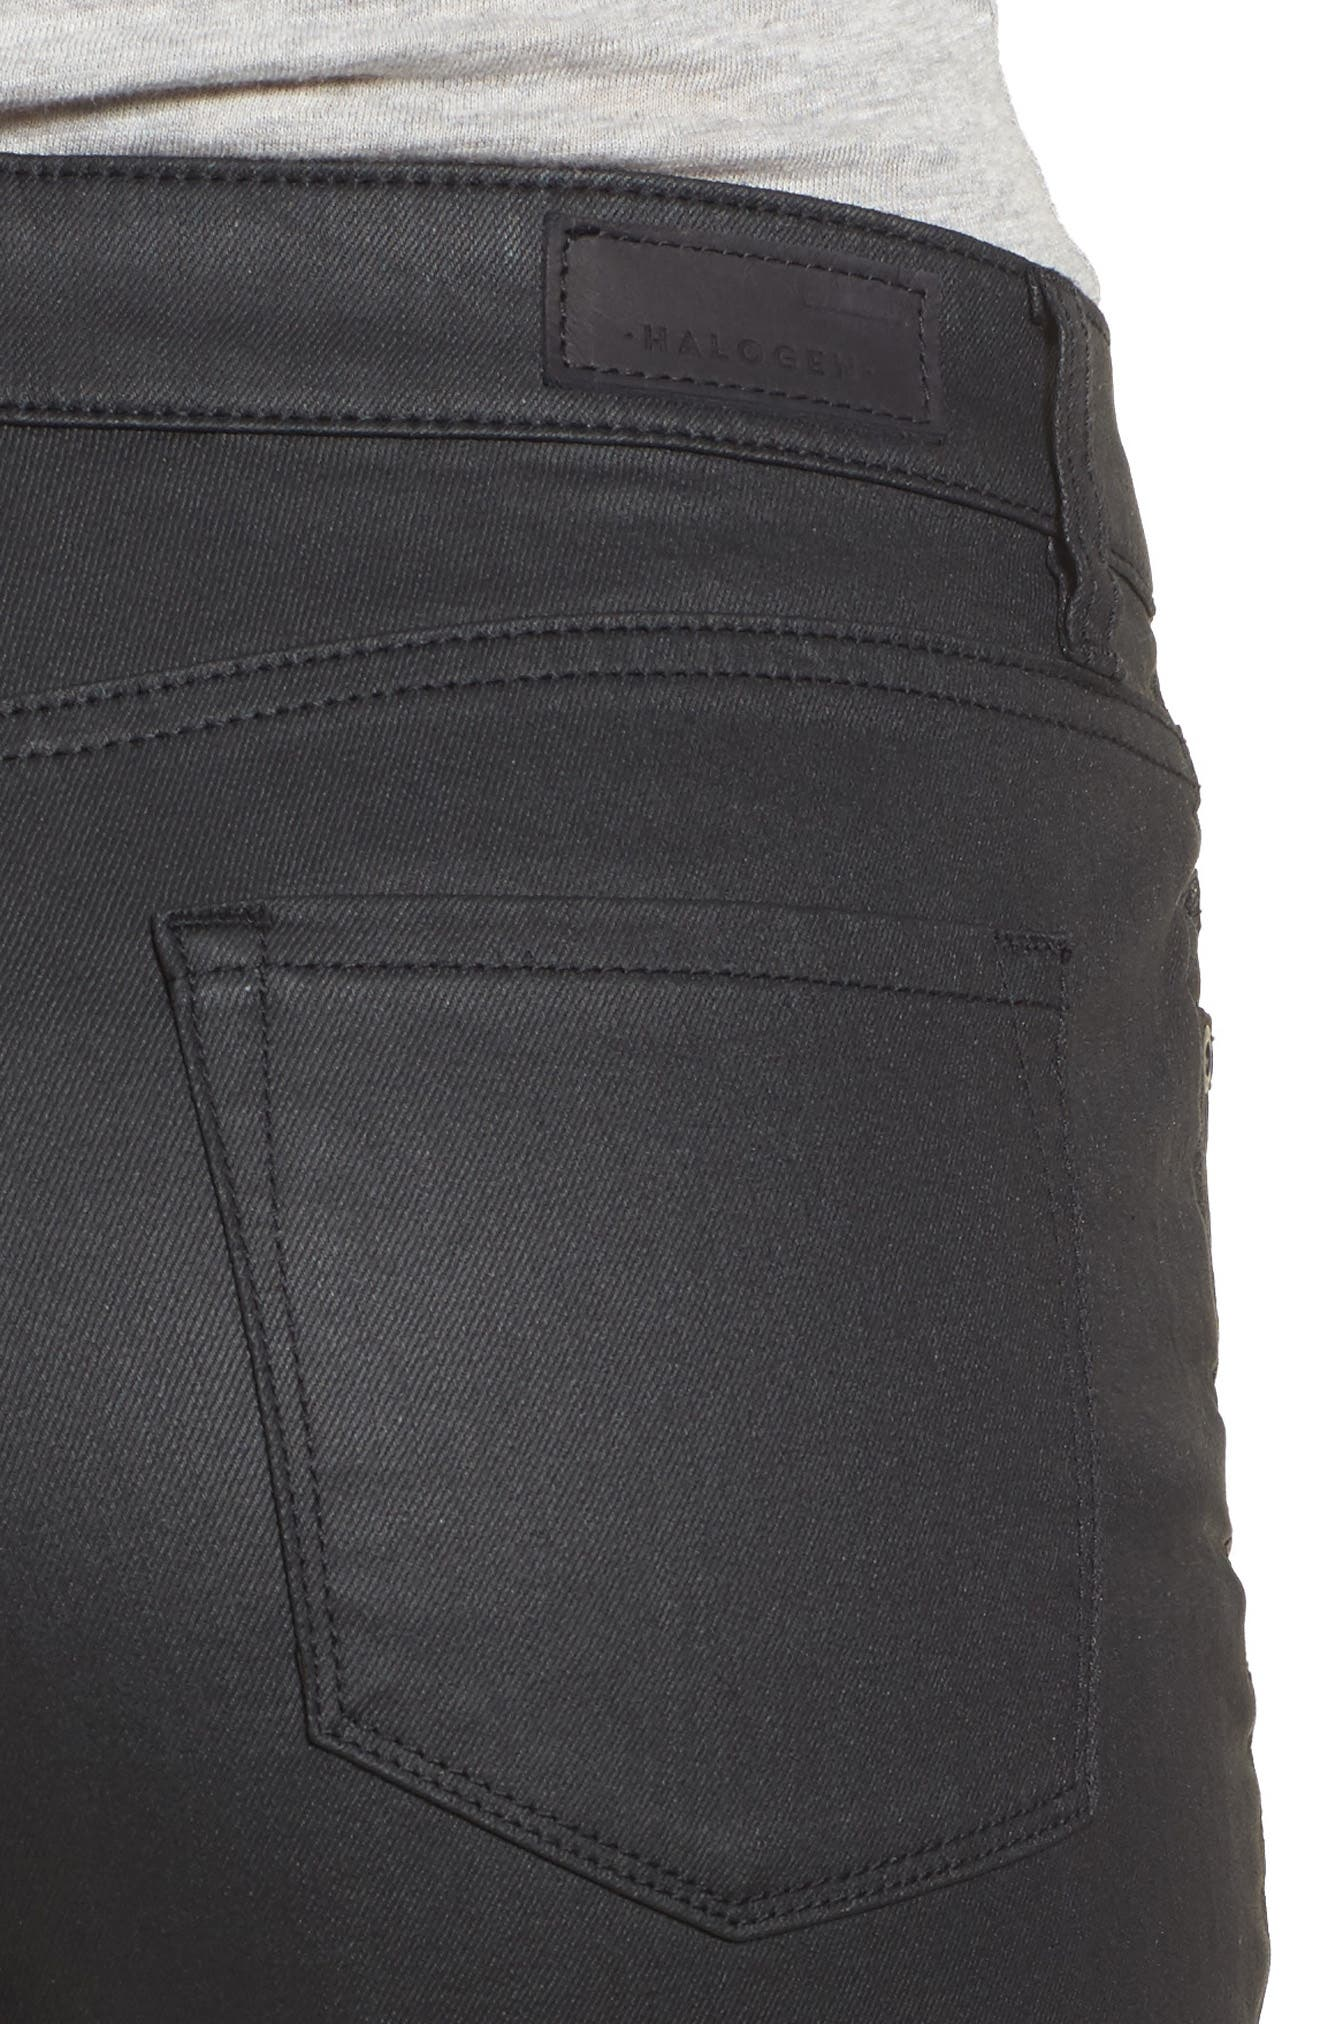 Coated Skinny Jeans,                             Alternate thumbnail 4, color,                             001